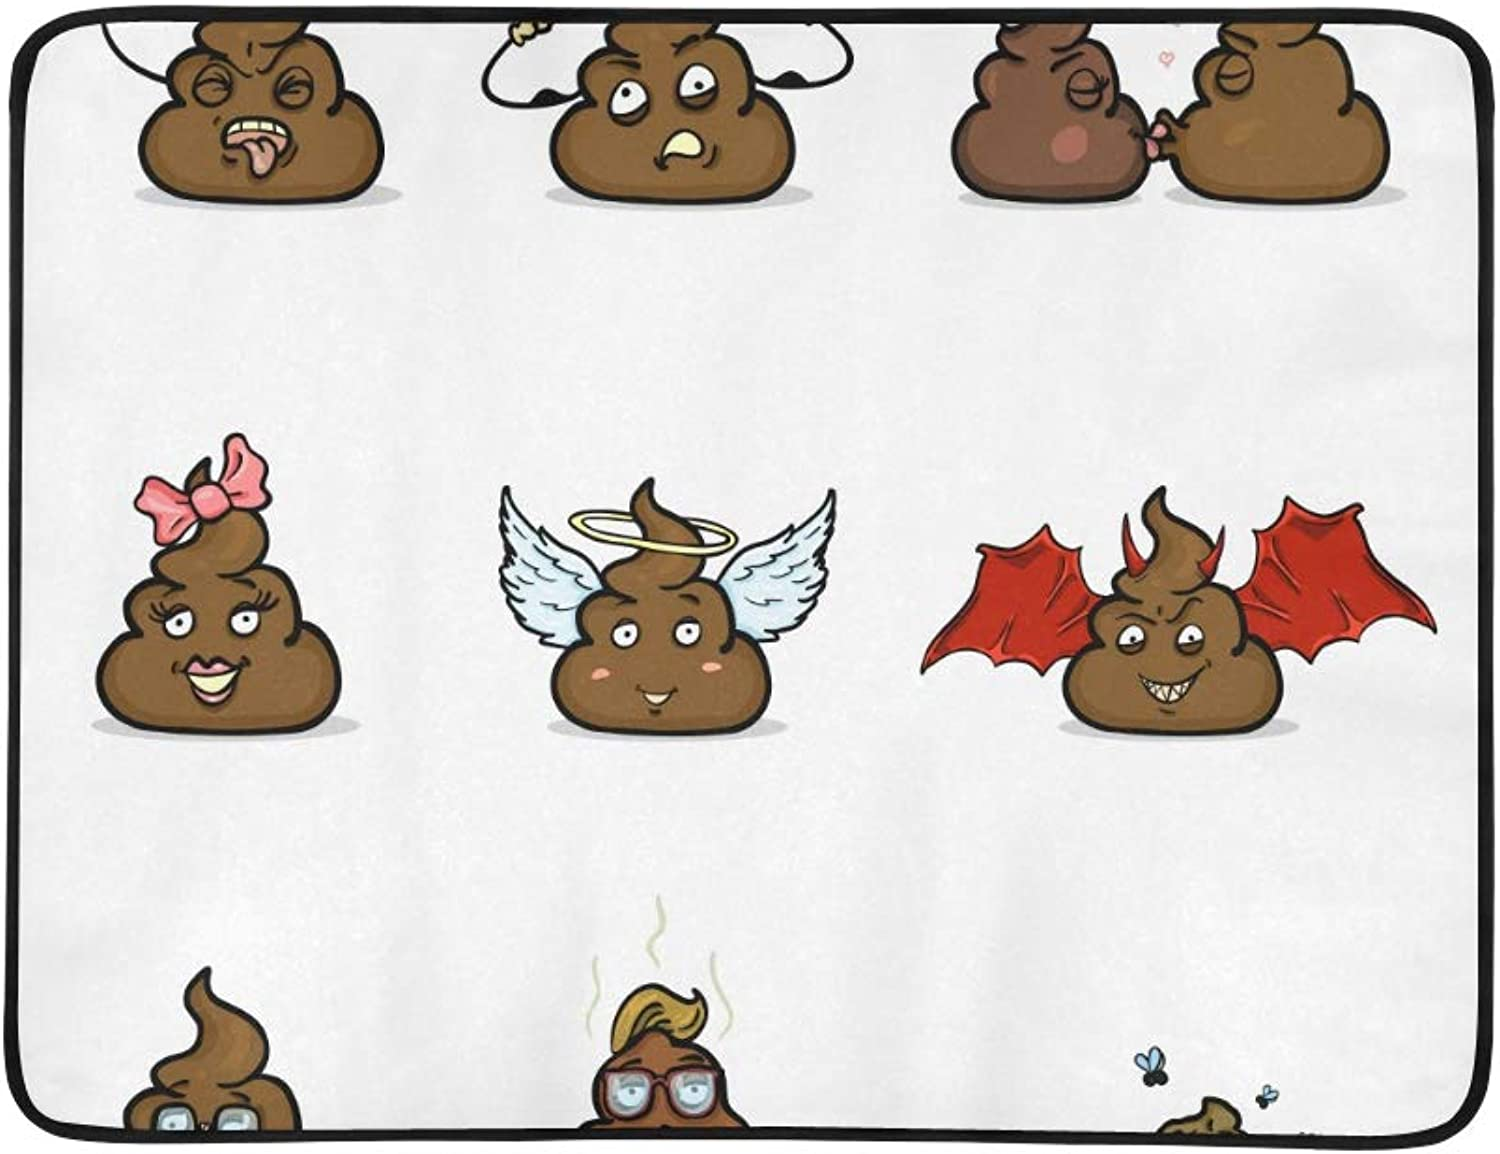 Cute Emotional Poop Expression Emoji Pattern Portable and Foldable Blanket Mat 60x78 Inch Handy Mat for Camping Picnic Beach Indoor Outdoor Travel